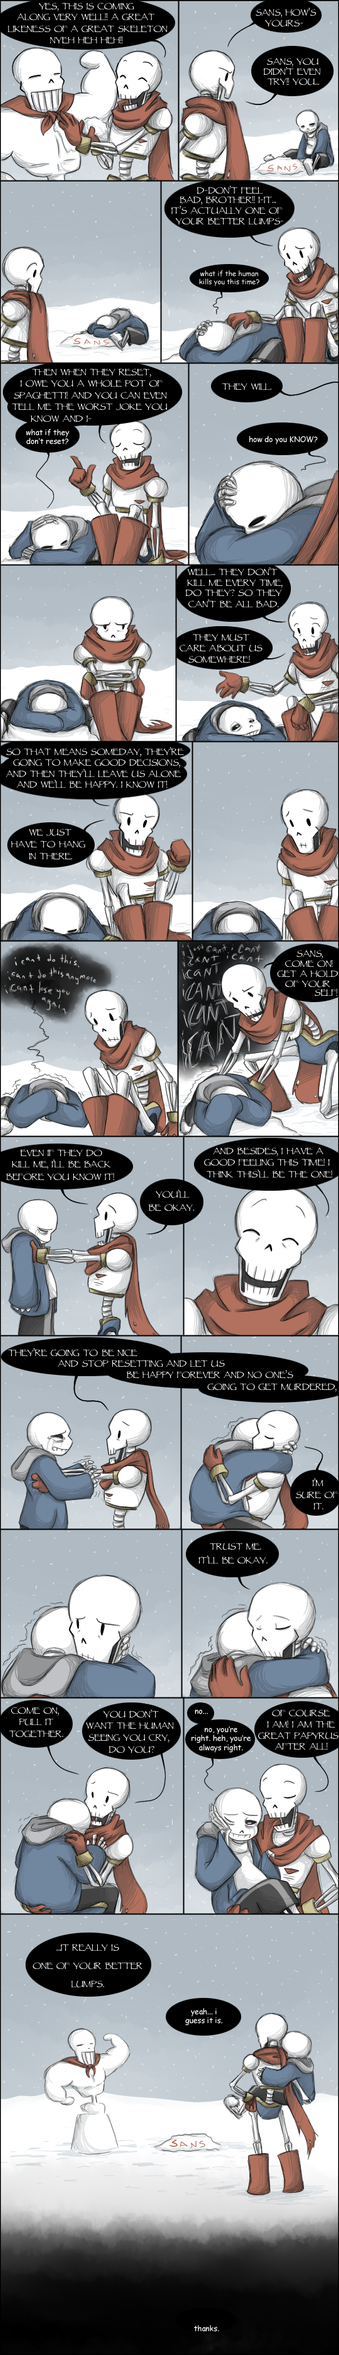 [UNDERTALE SPOILERS] They'll get bored eventually by zarla